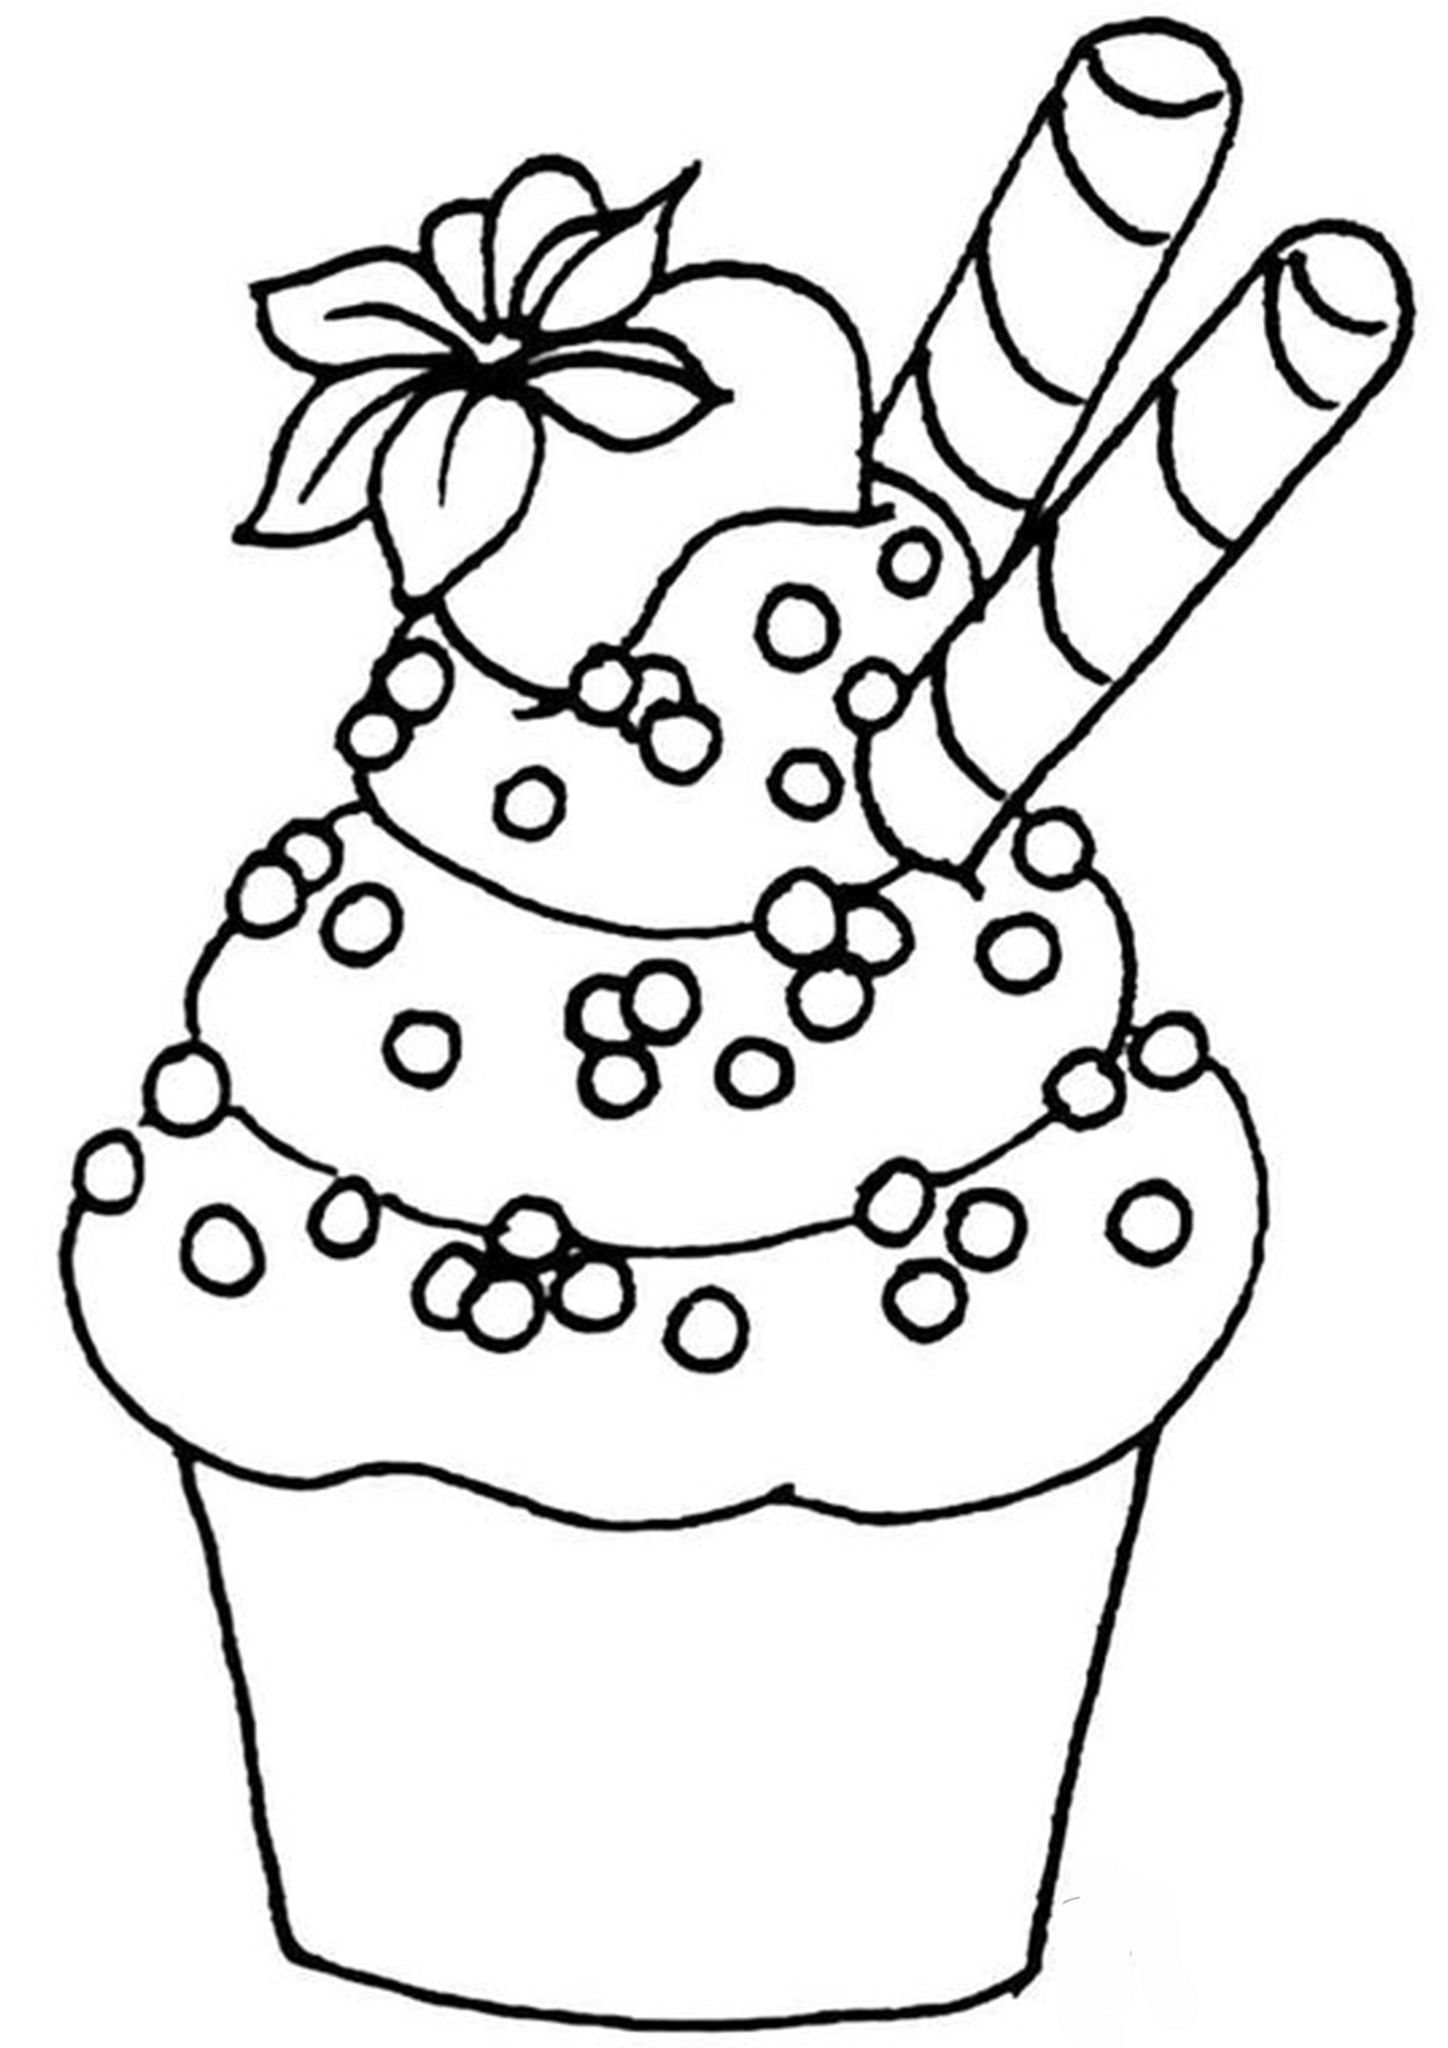 Free Easy To Print Cupcake Coloring Pages Cupcake Coloring Pages Leaf Coloring Page Coloring Pages